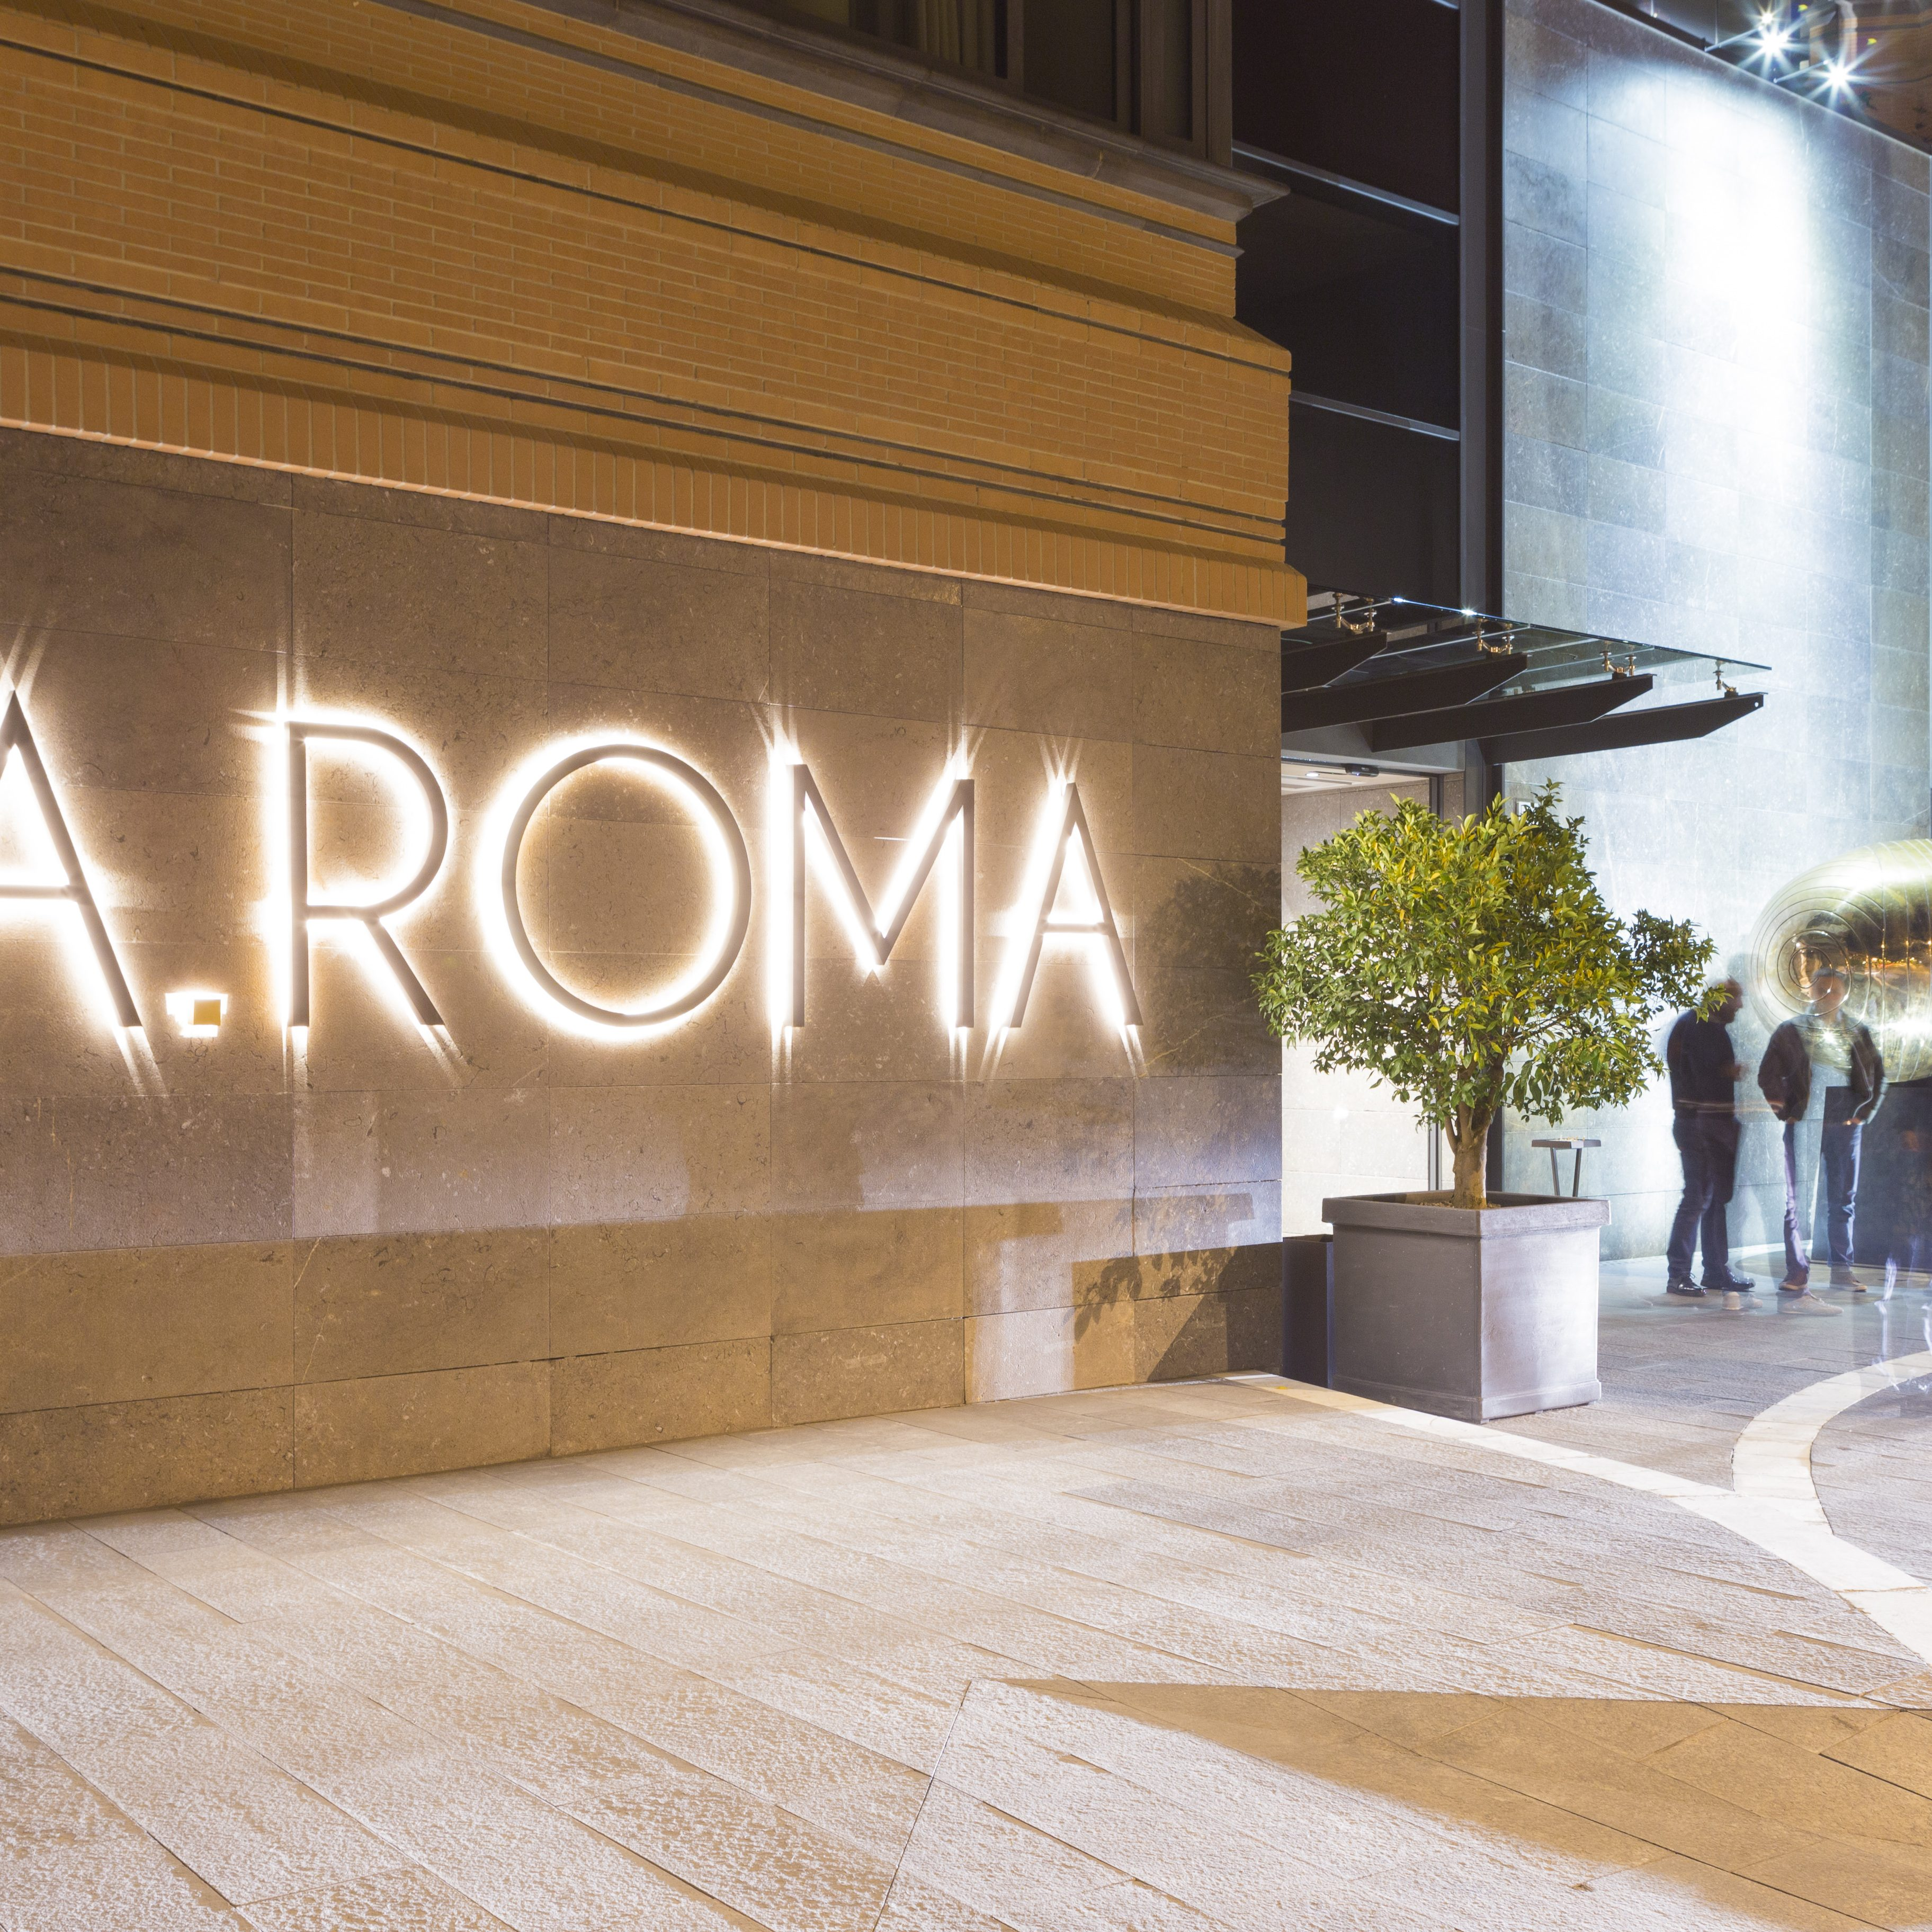 A.Roma Lifestyle Hotel